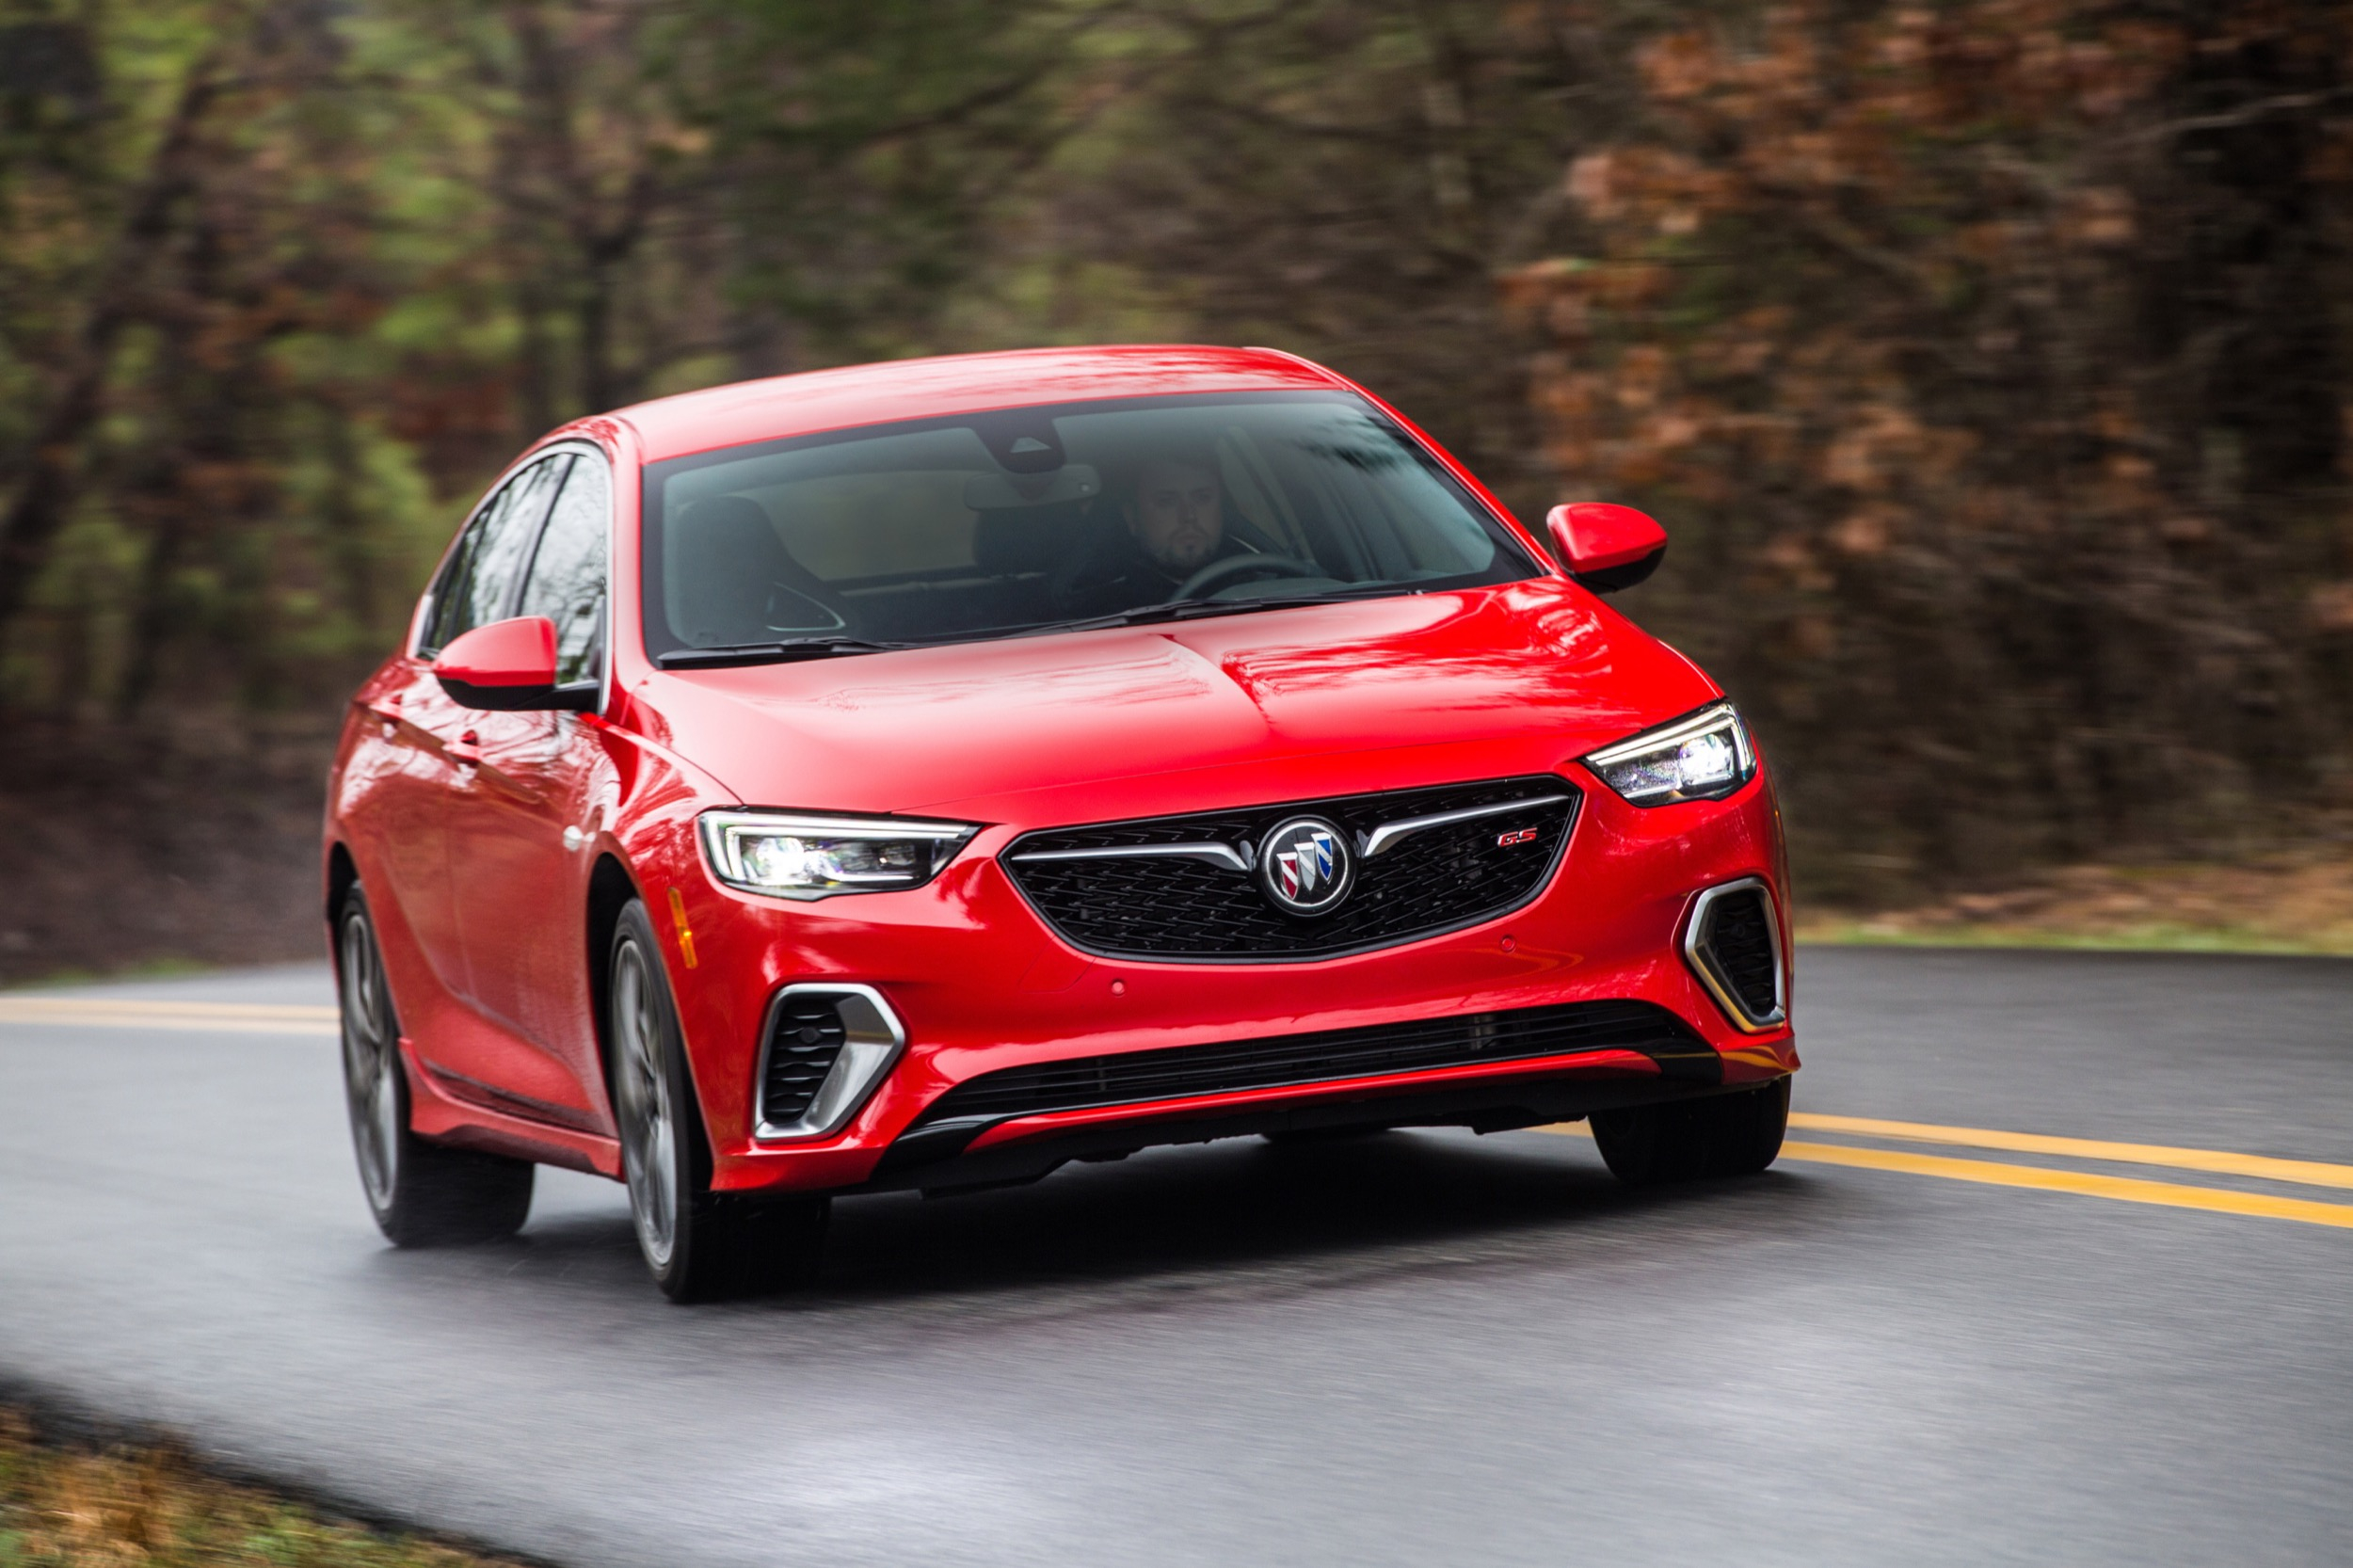 We Have Some Beef With This 2018 Buick Regal Gs Review | Gm 2022 Buick Regal Gs 0-60, Interior, Engine